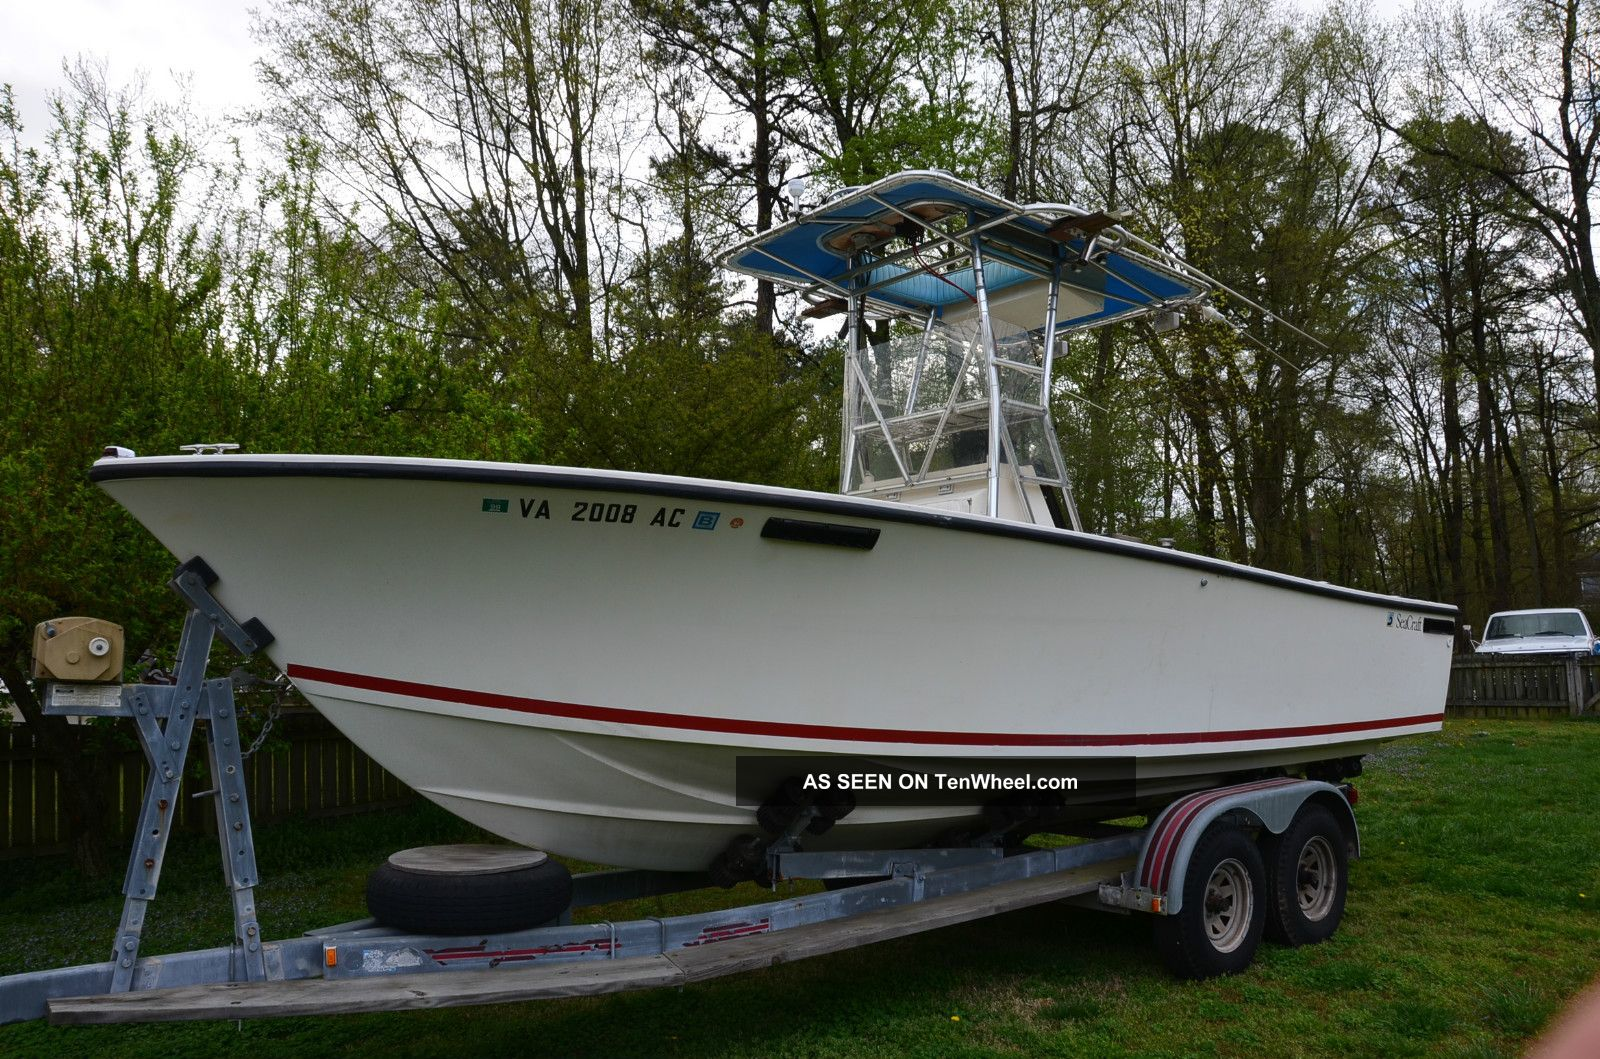 1978 Sea Craft 23 Foot Offshore Saltwater Fishing photo